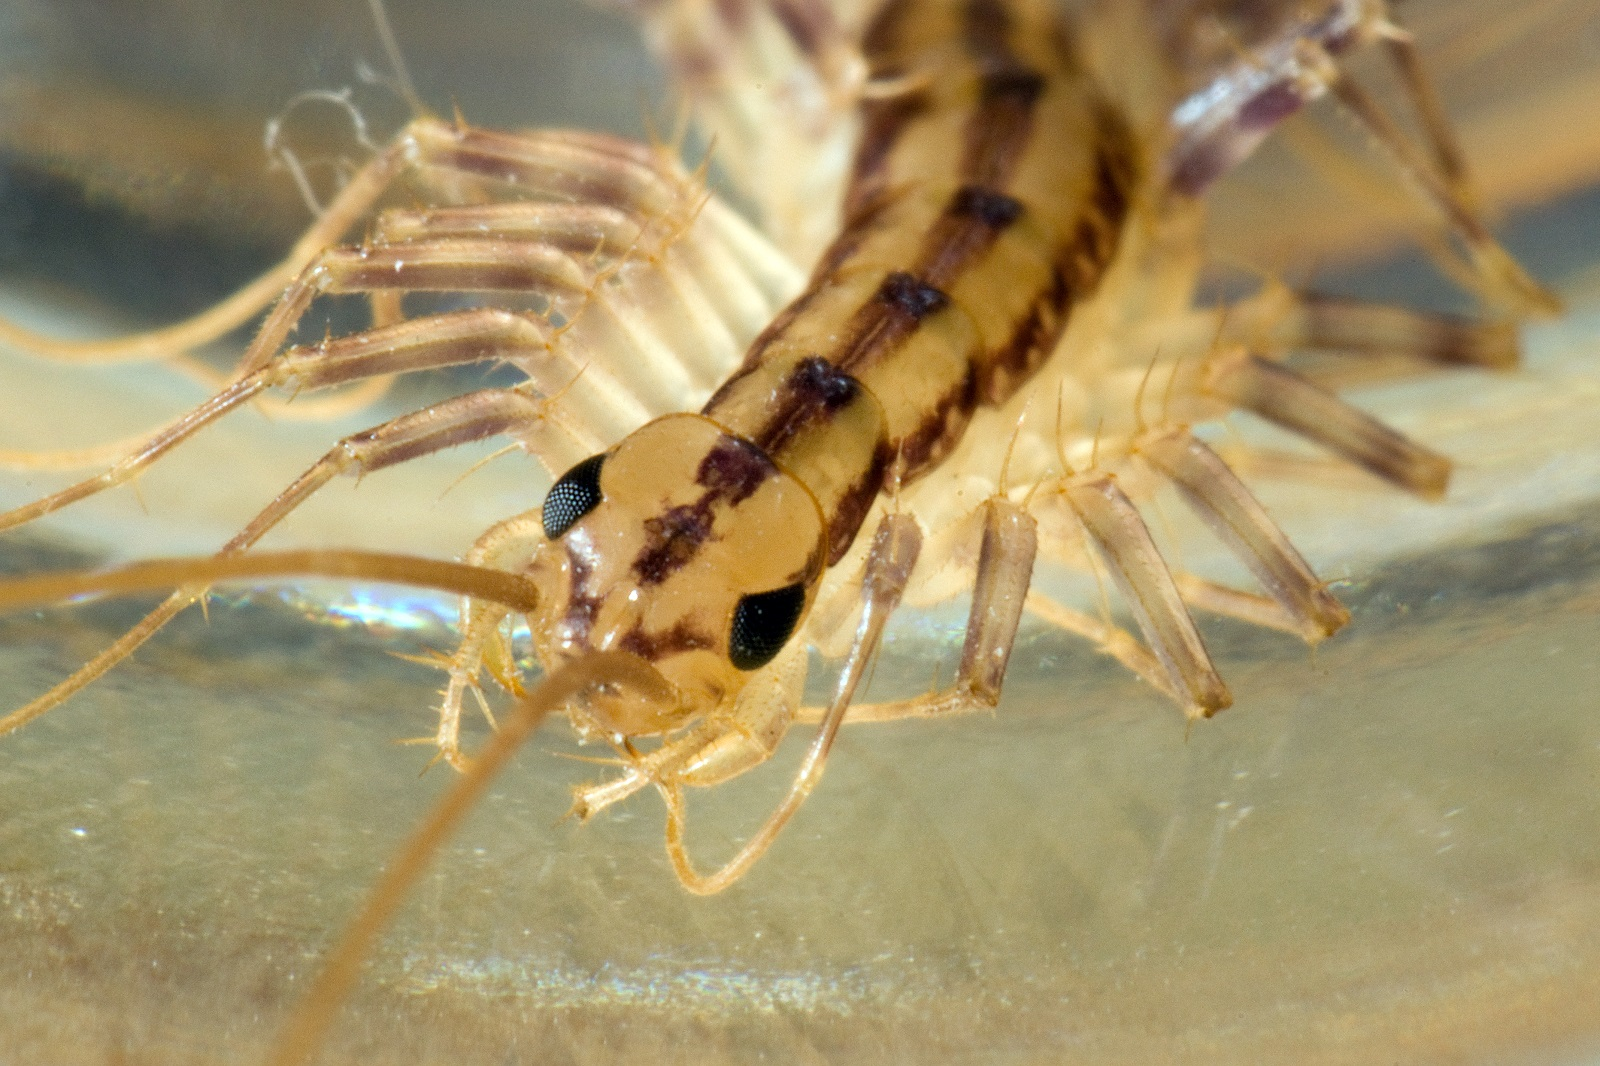 Real Monstrosities House Centipede